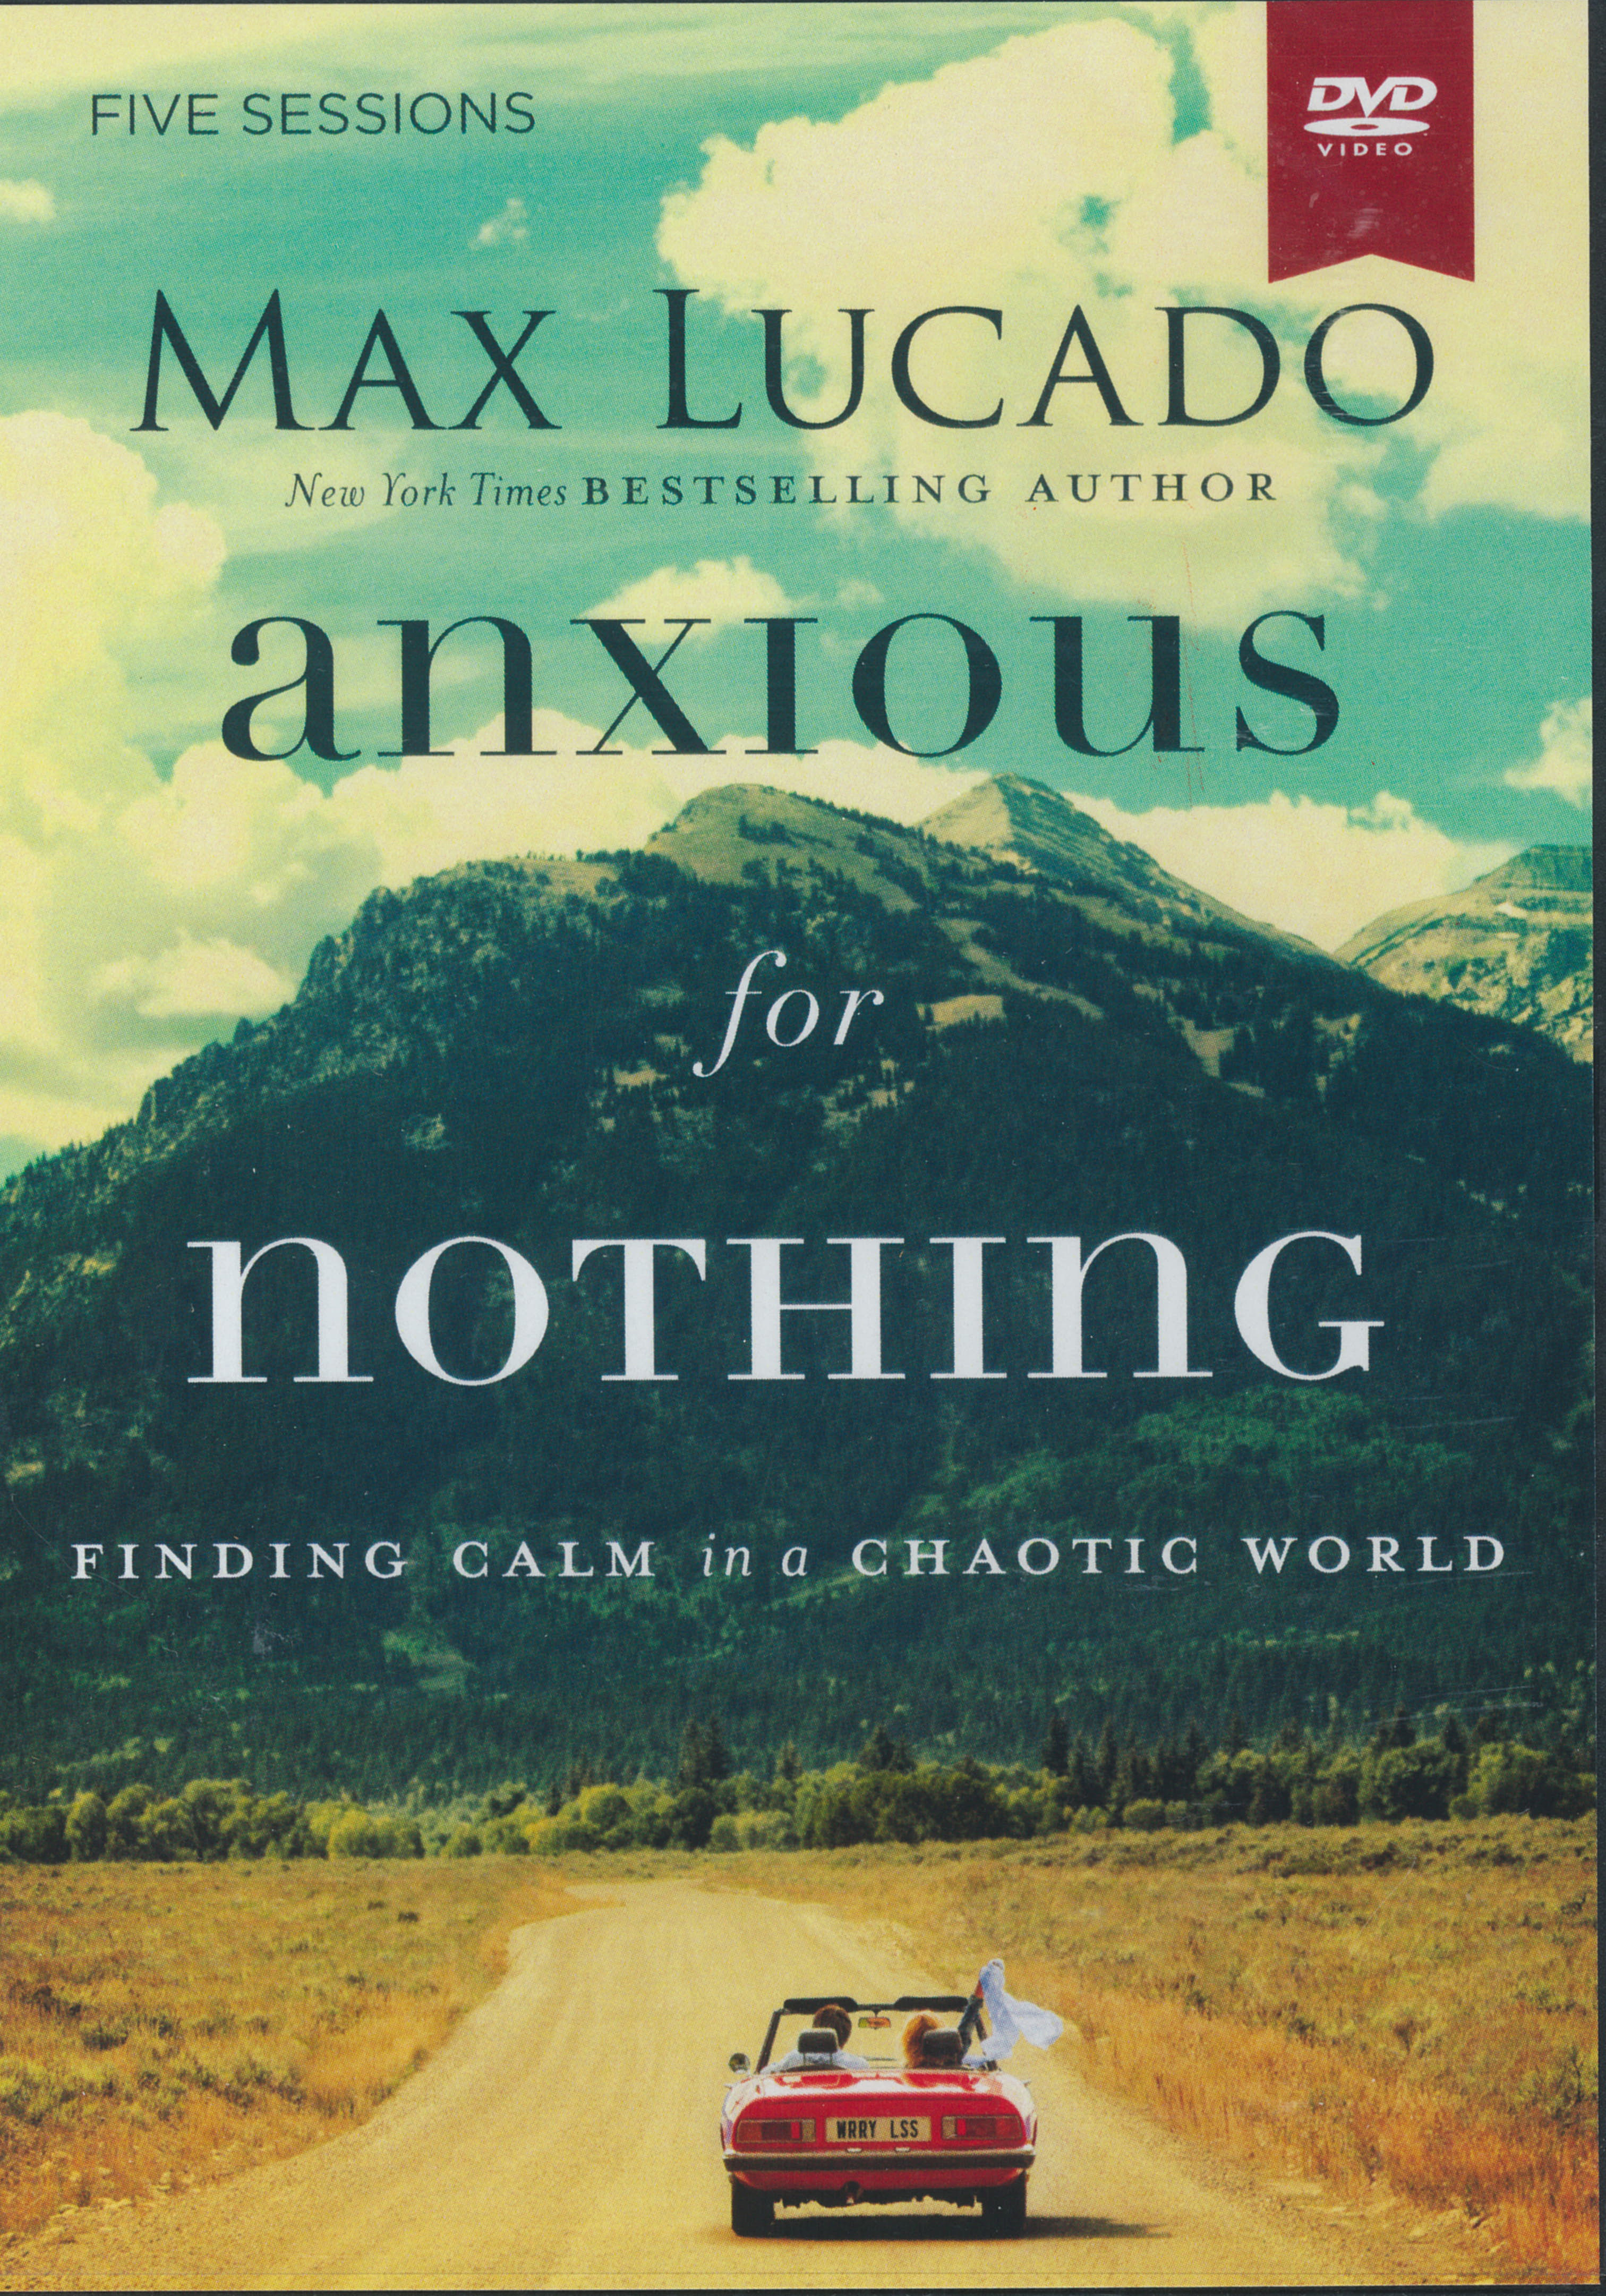 Anxious For Nothing DVD by Max Lucado 108-9780310087335